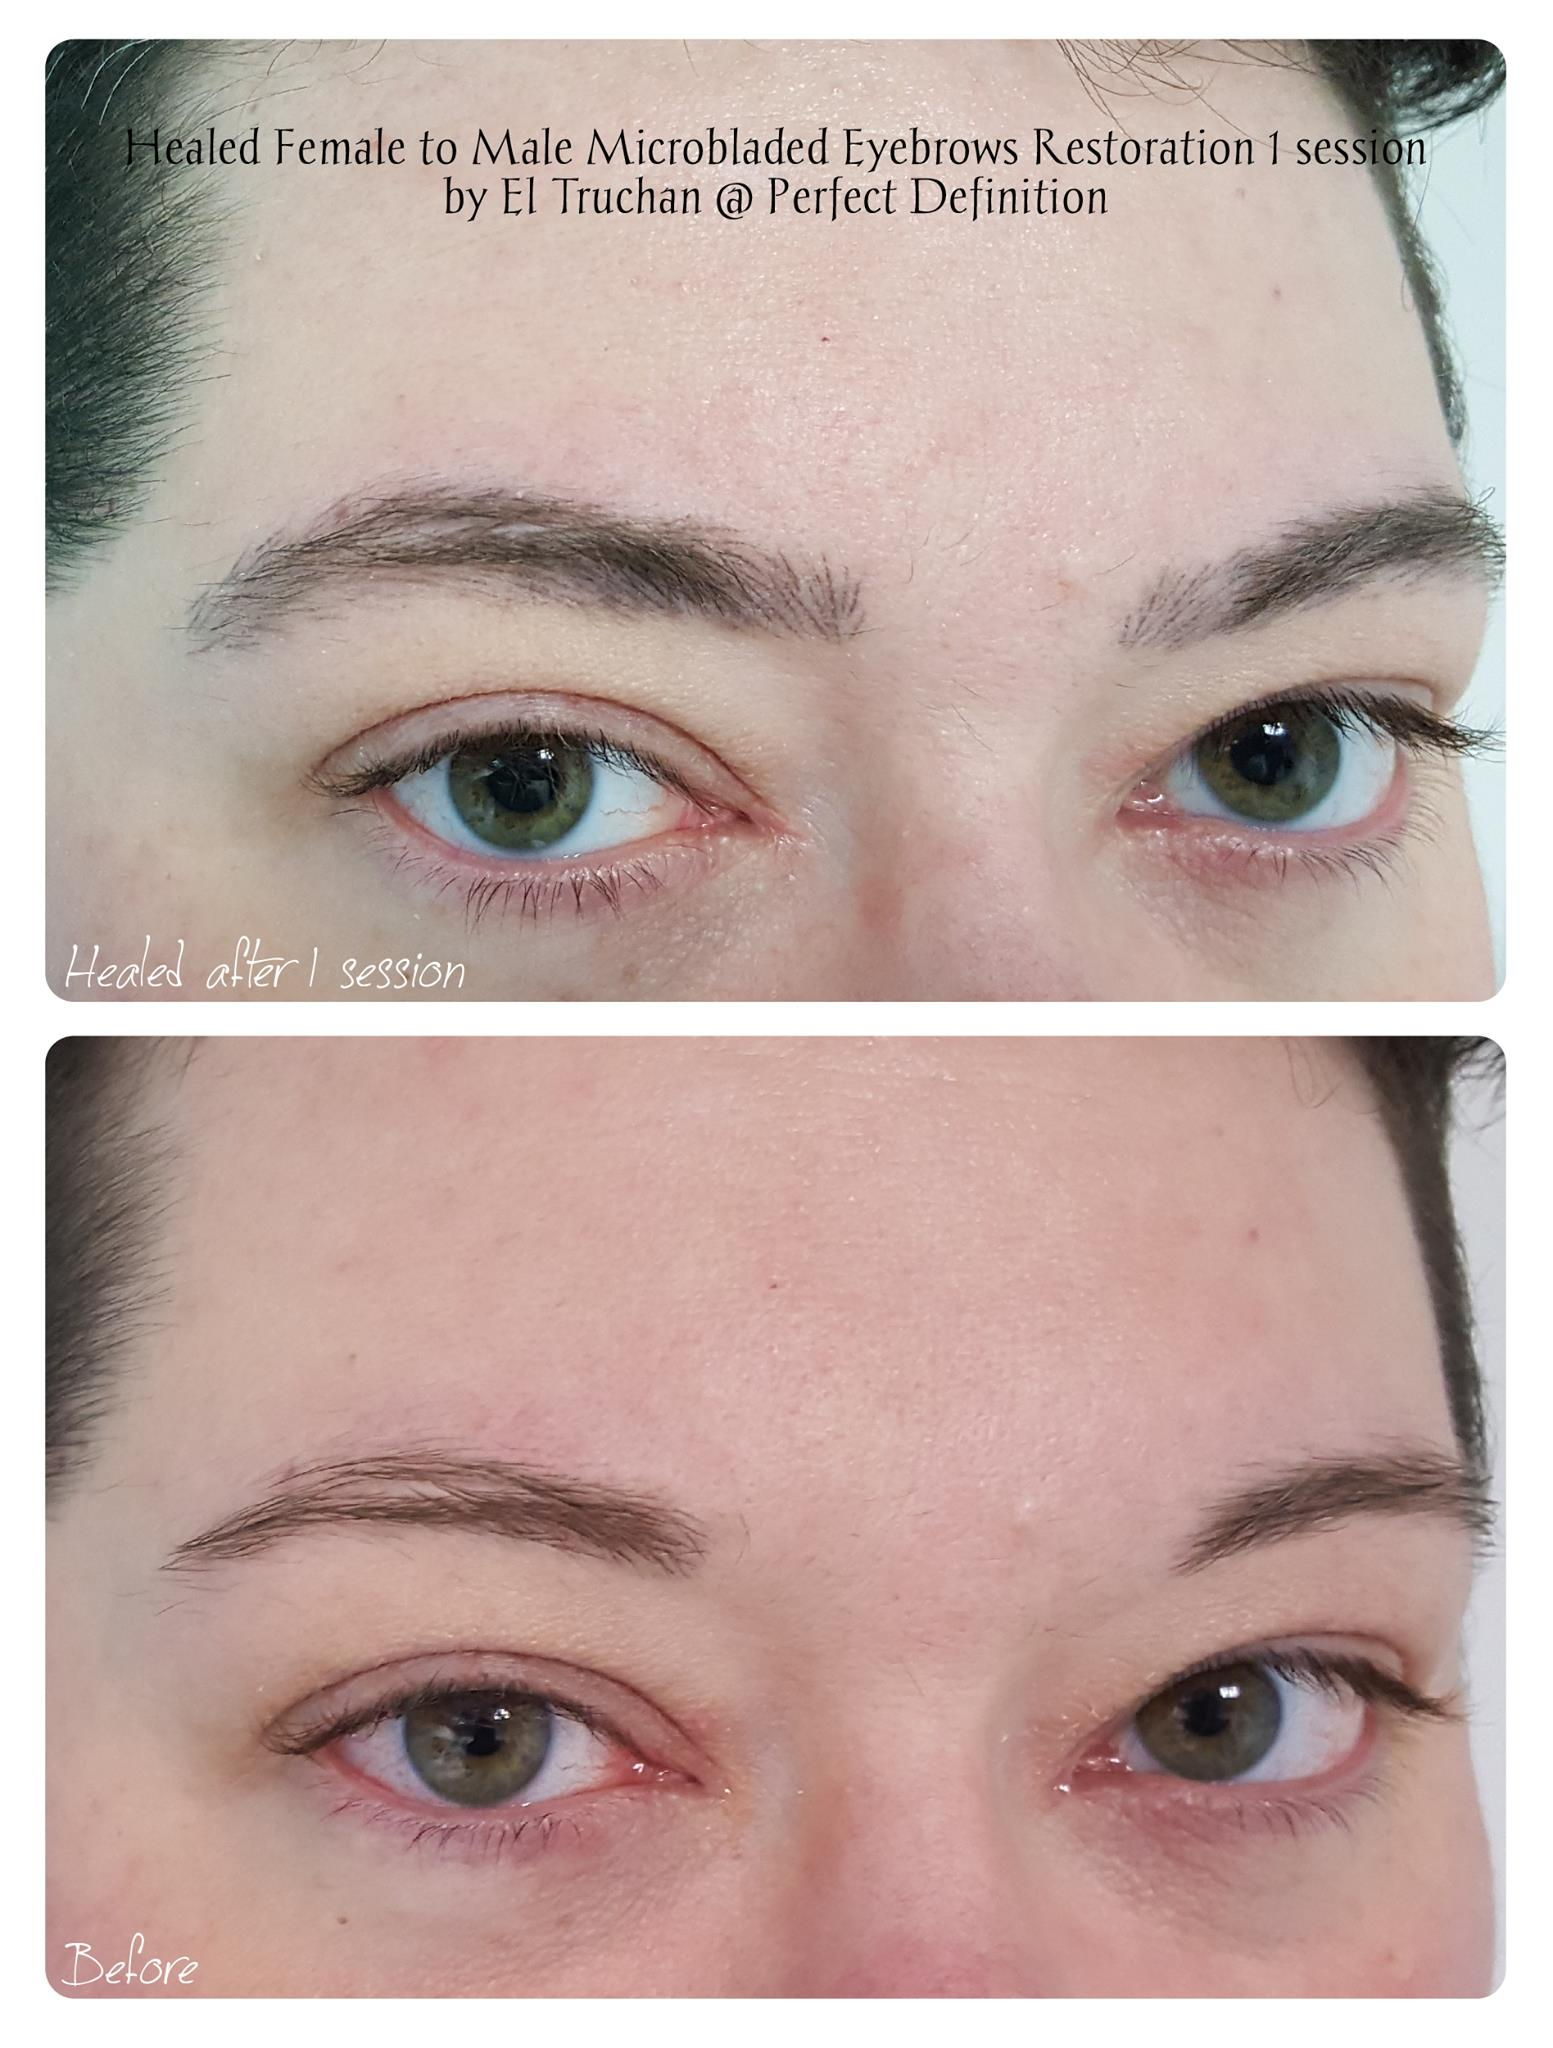 Headed Female to Male Microbladed Eyebro